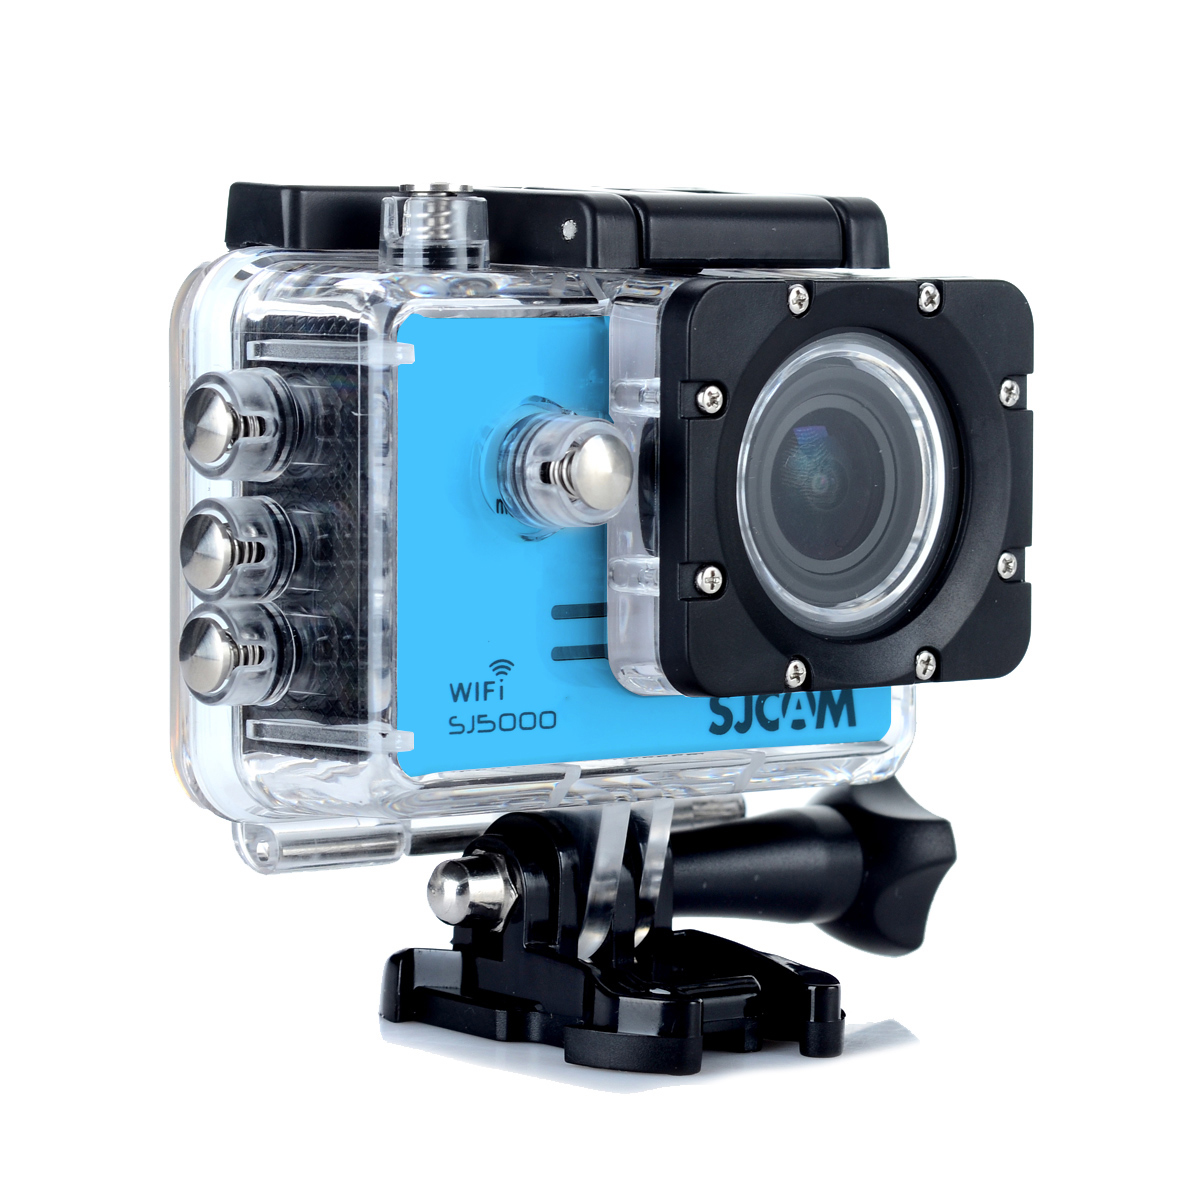 Original SJCAM SJ5000 WiFi Action HD Camera 14MP Novatek 96655 1080P Waterproof Blue